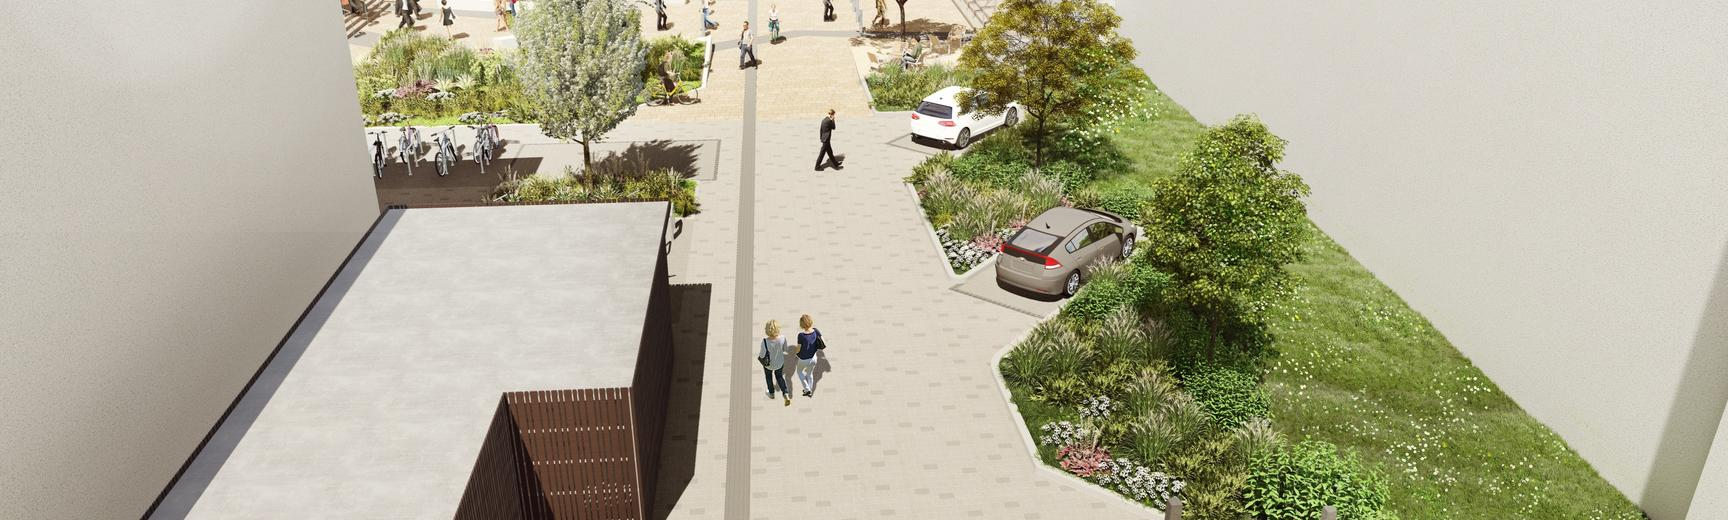 Artists impression of new landscaping plans at Hinshelwood Road